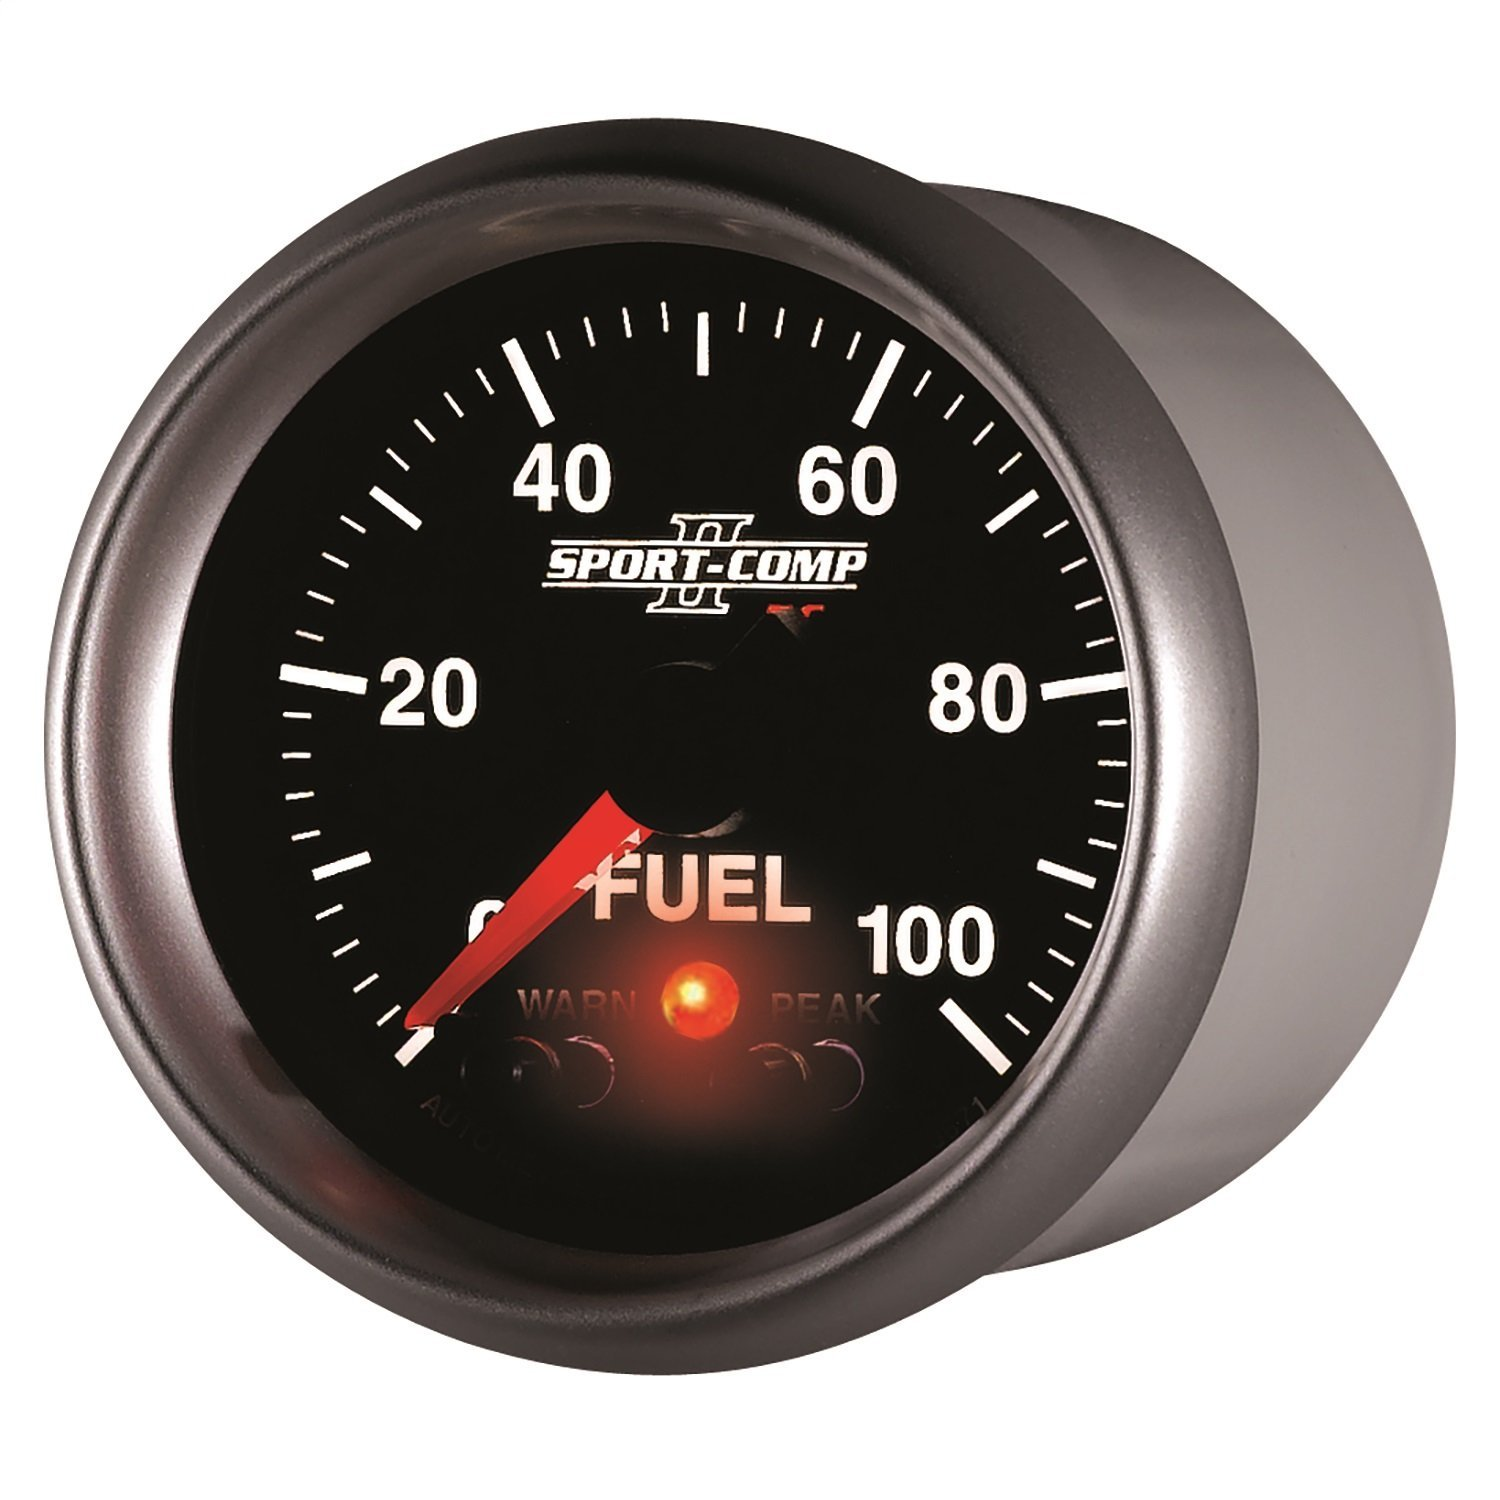 Auto Meter 3671 Sport-Comp II PC 2-1/16' 0-100 PSI Full Sweep Electric Fuel Pressure Gauge Peak and Warn with Electronic Control